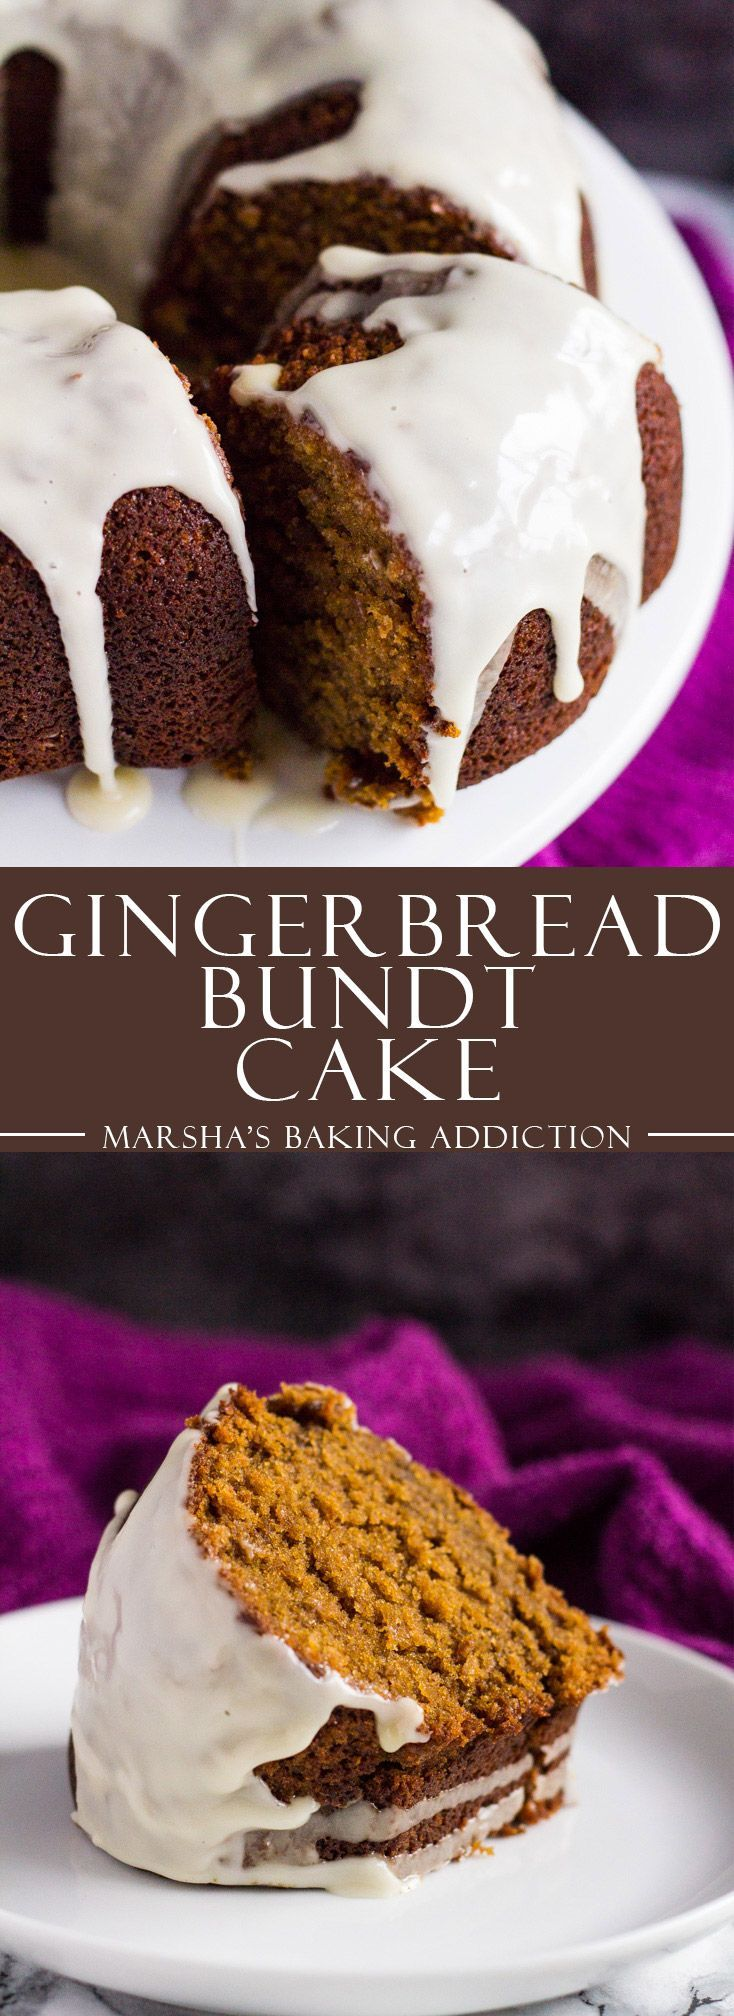 Gingerbread Bundt Cake | http://marshasbakingaddiction.com /marshasbakeblog/